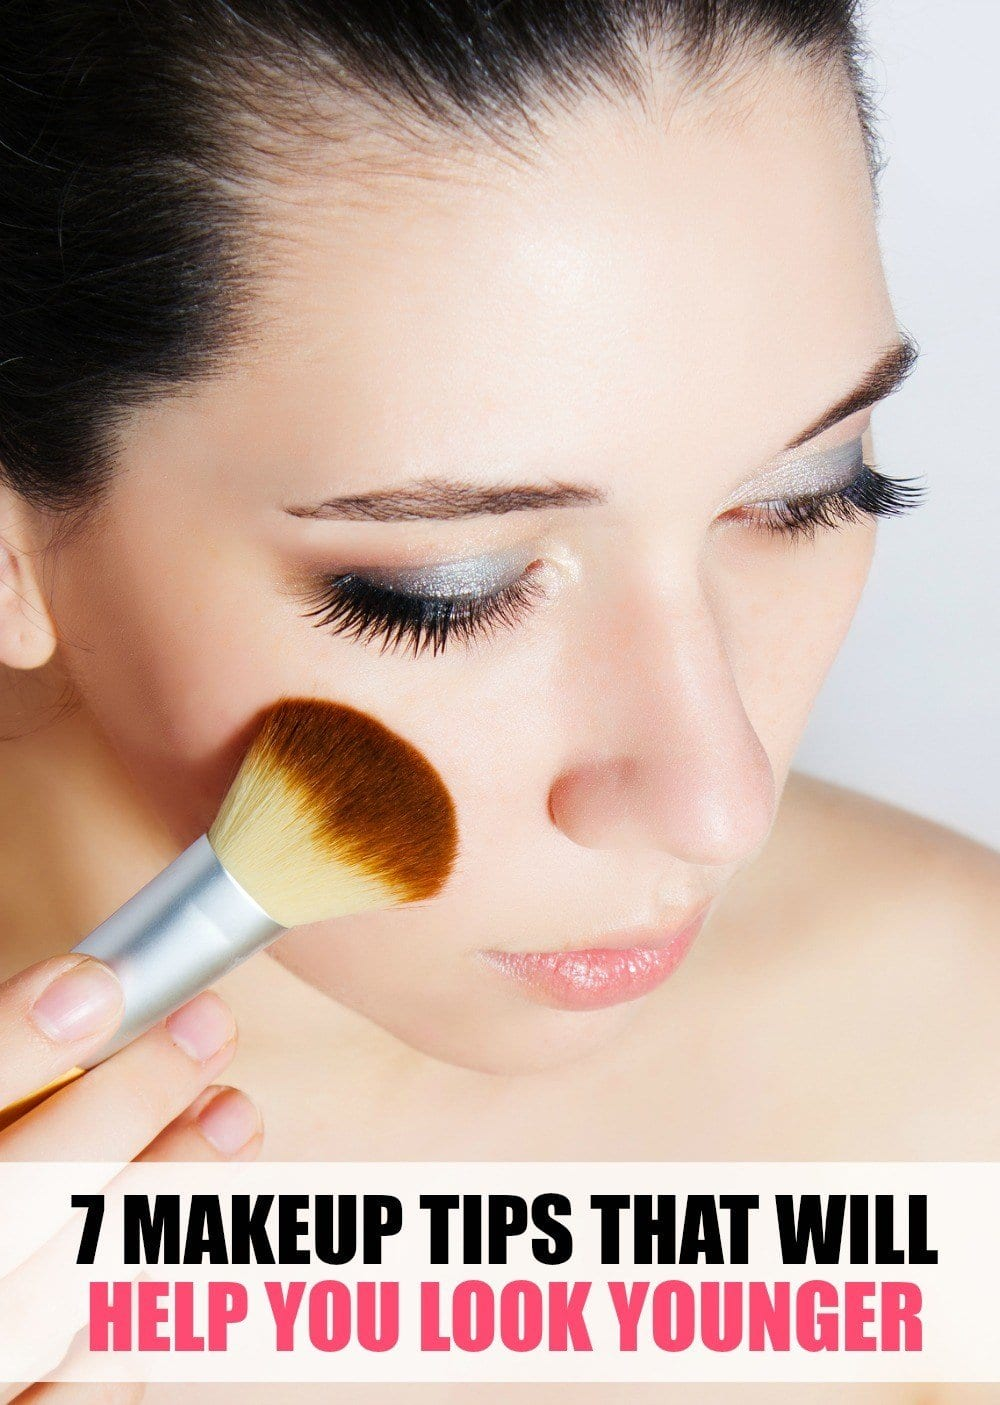 burt's bees_7 Anti-Aging Makeup Tips That Help You Look Younger   Mom Fabulous